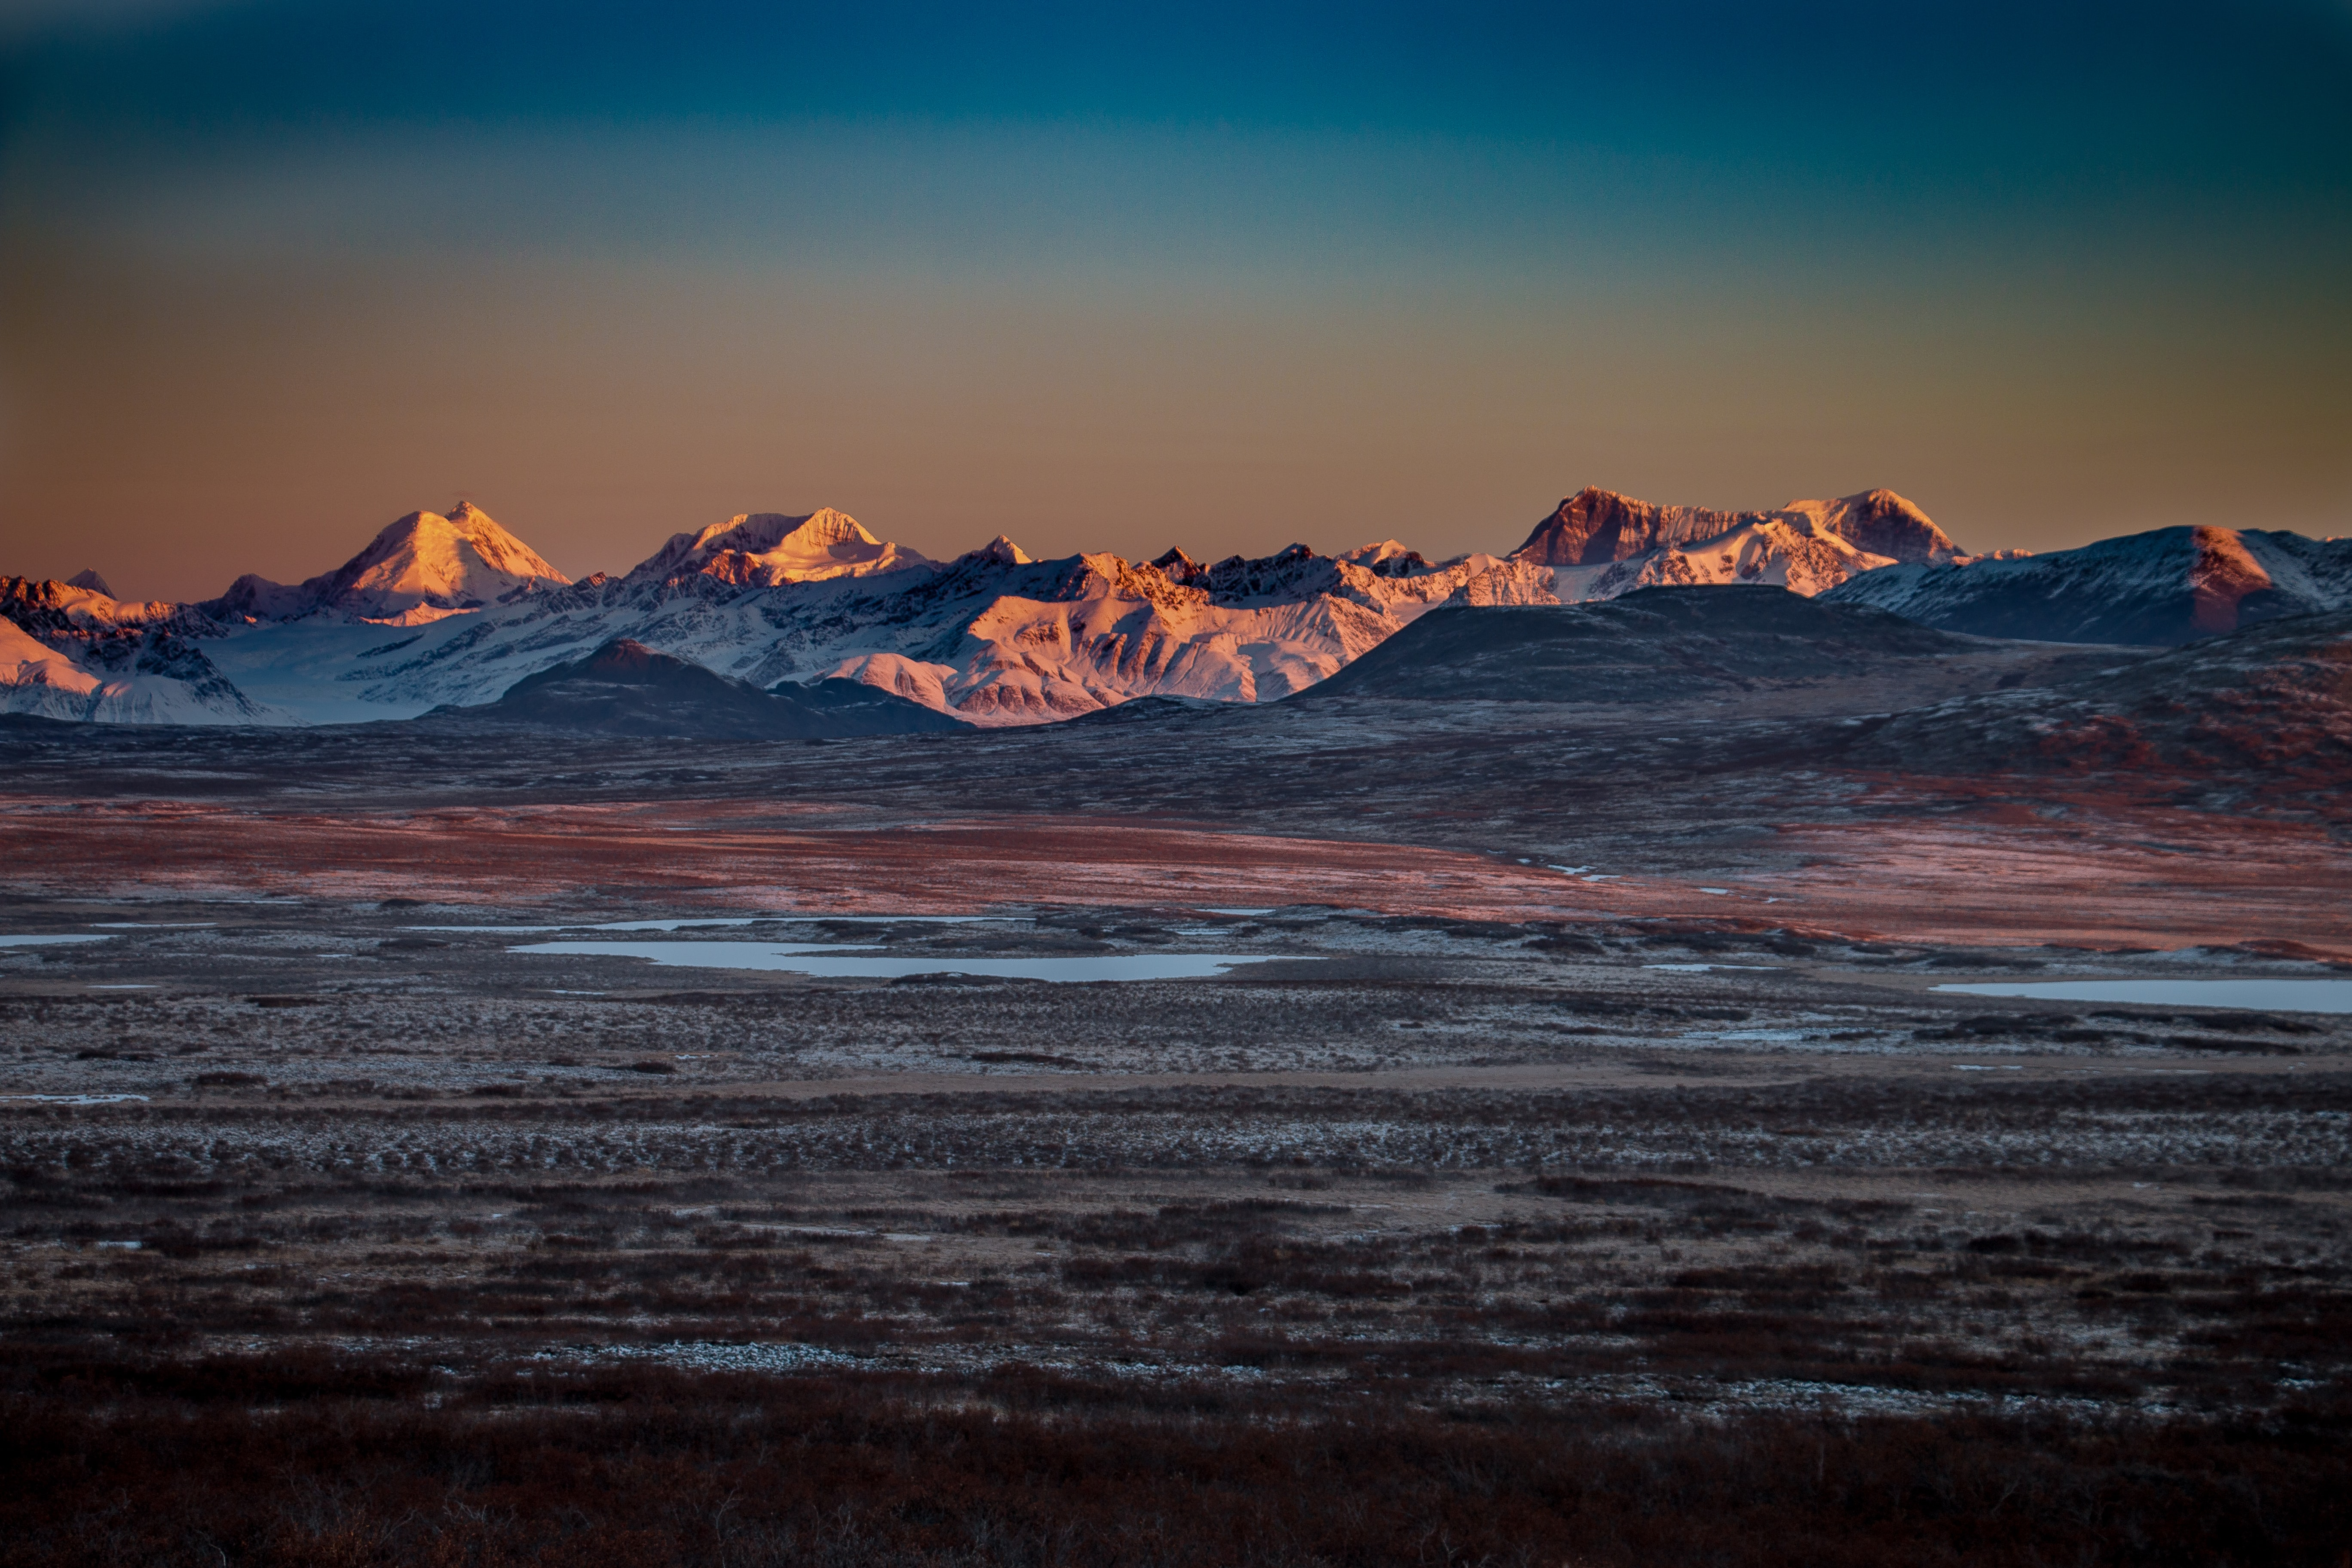 Frozen tundra near the mountains during sunset